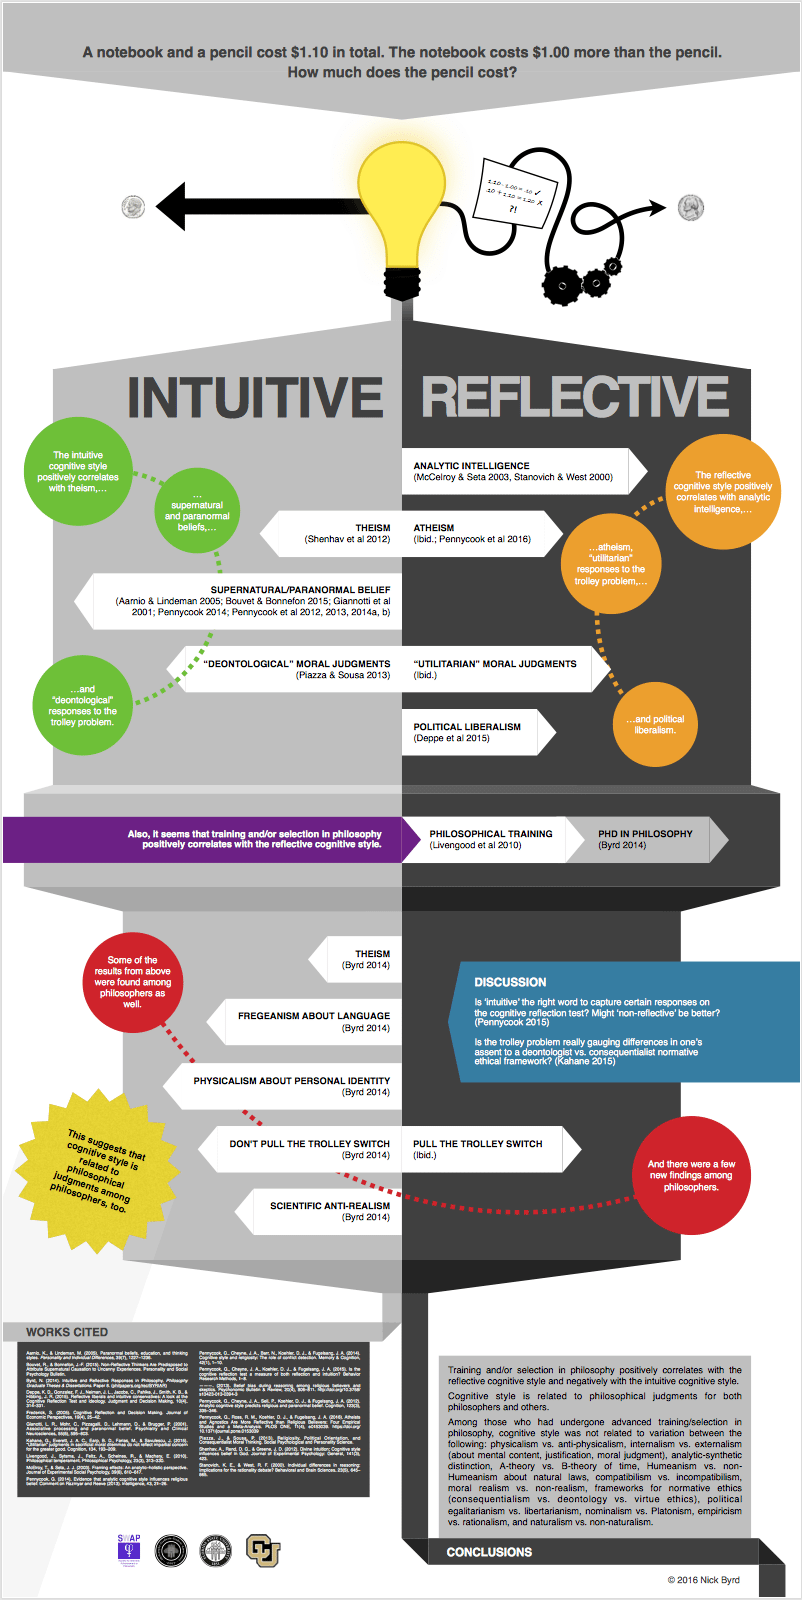 Nick Byrd's Cognitive Styles In Philosophy Poster